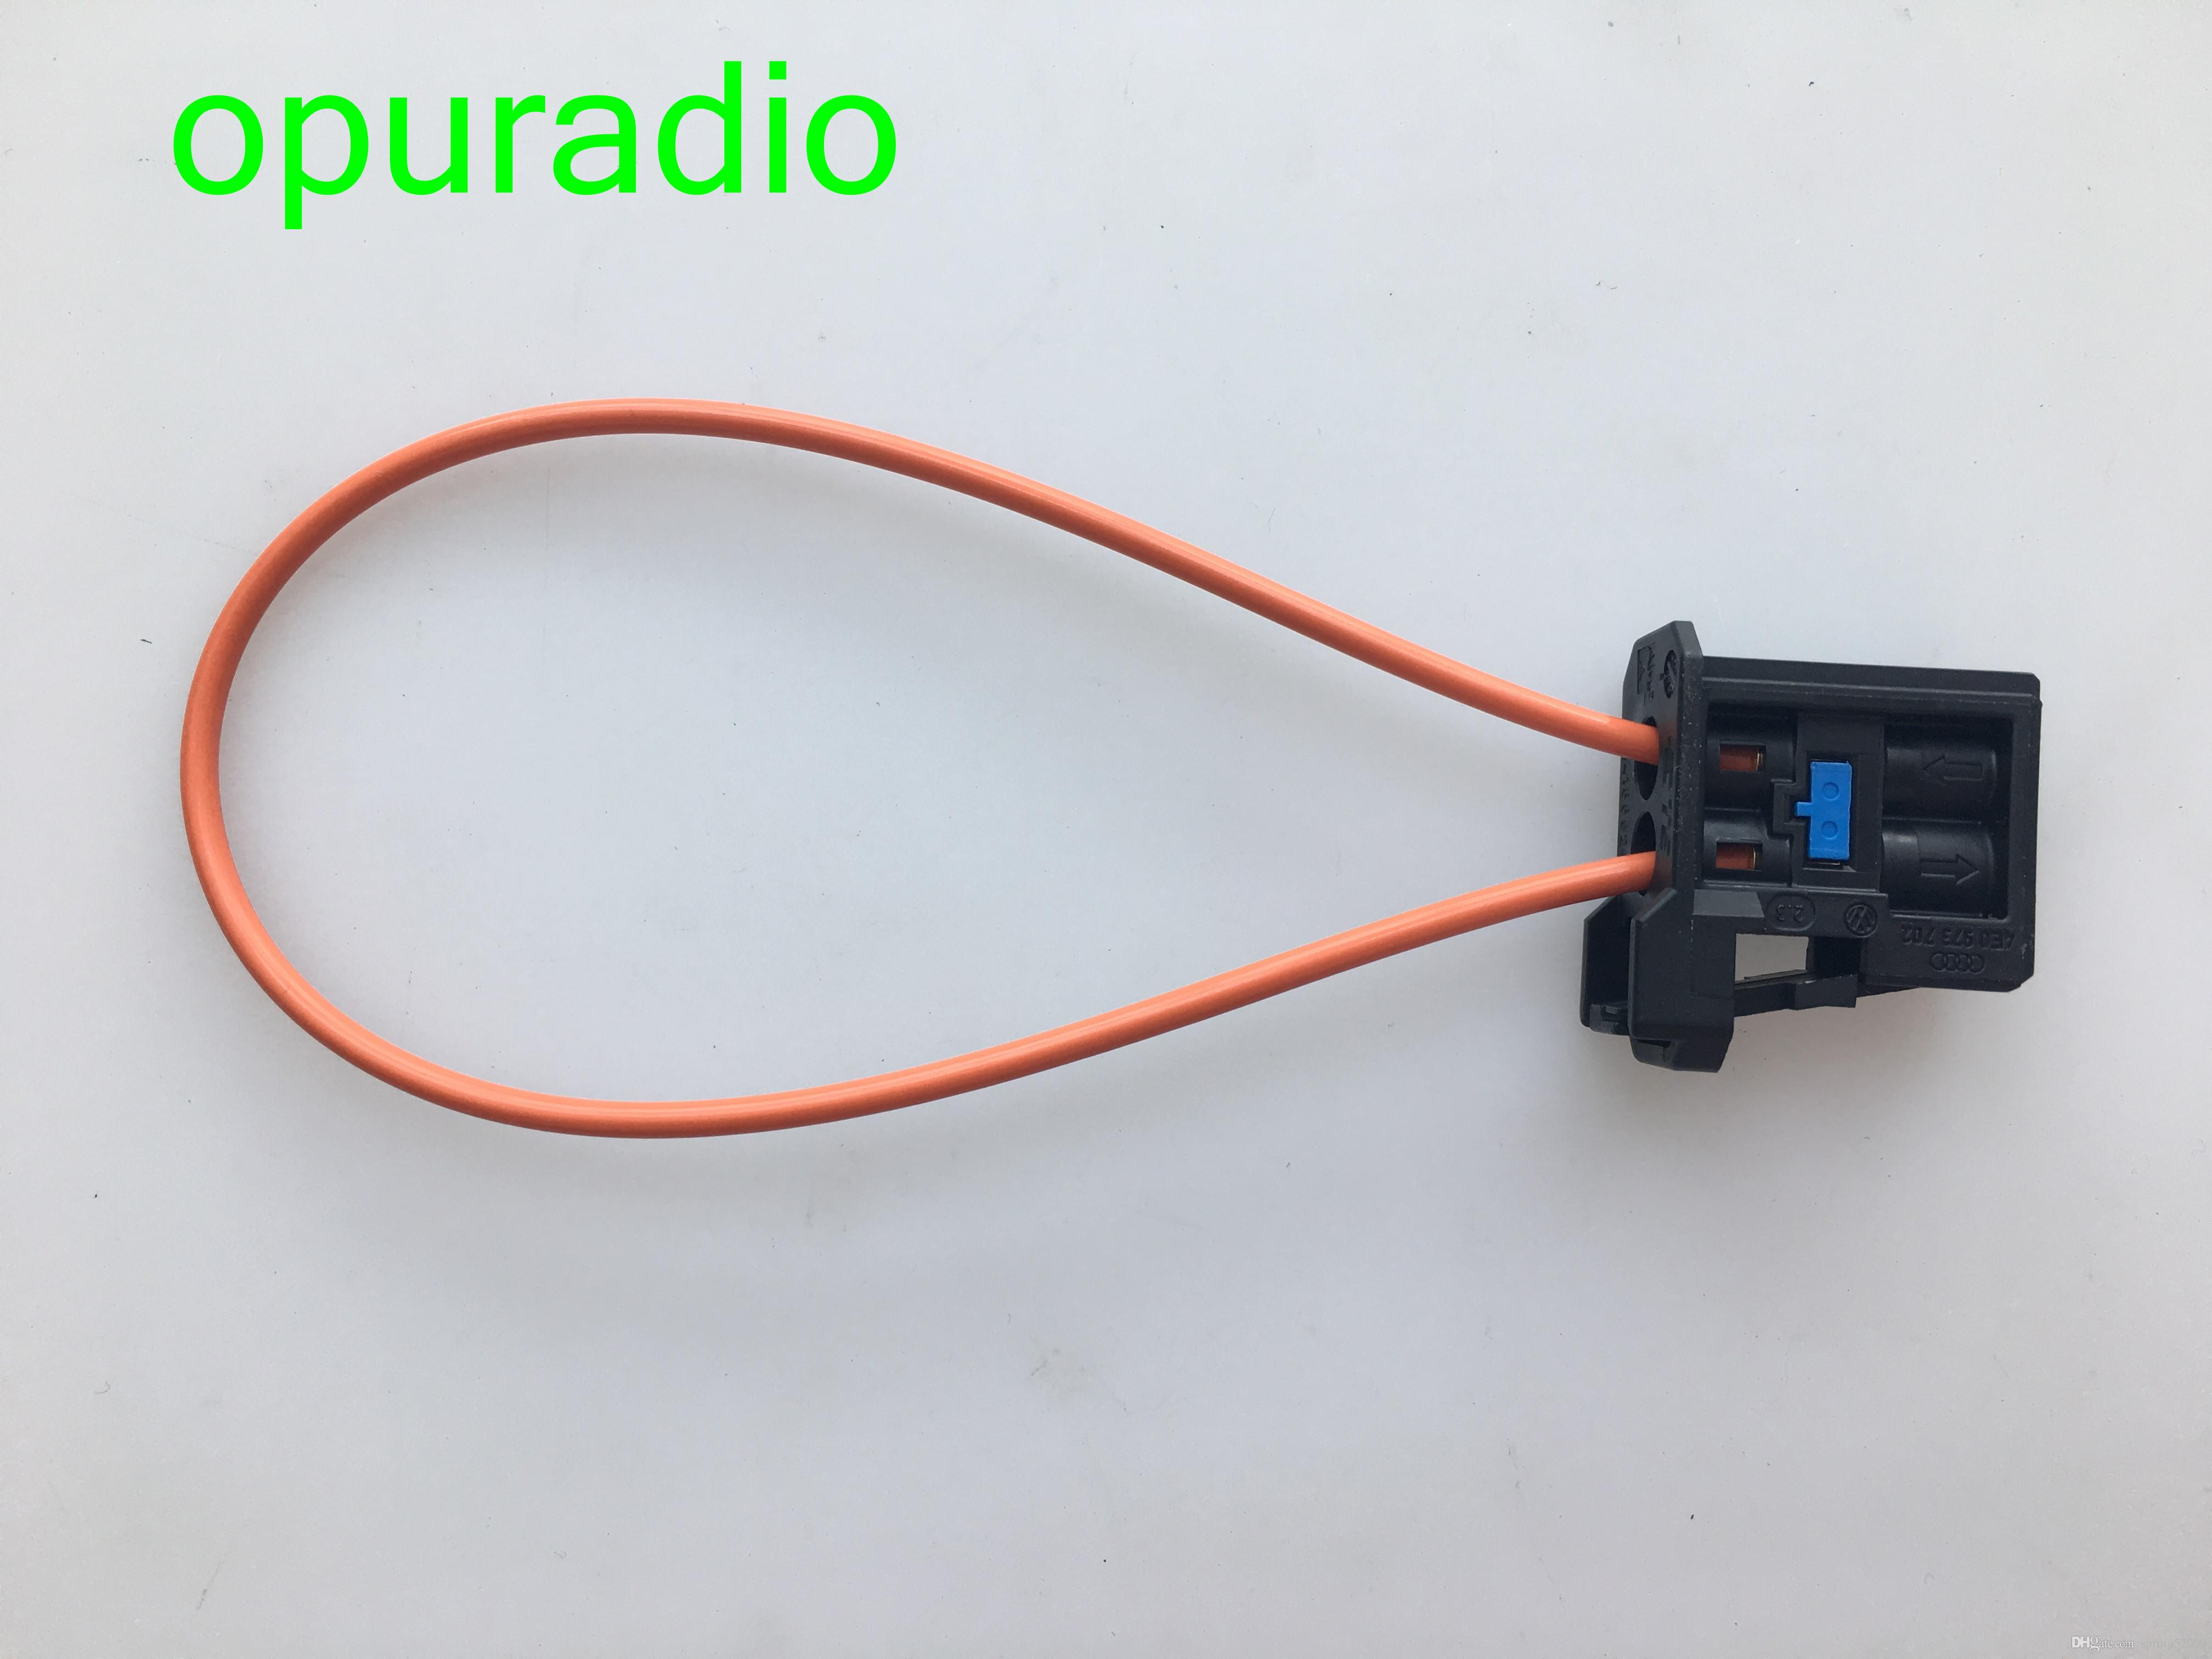 Female man MOST Optical Optic Fiber Cable Loop Connector Diagnostic Device Tool Navigation Systems for VW Audi BMW Mercedes 1 car